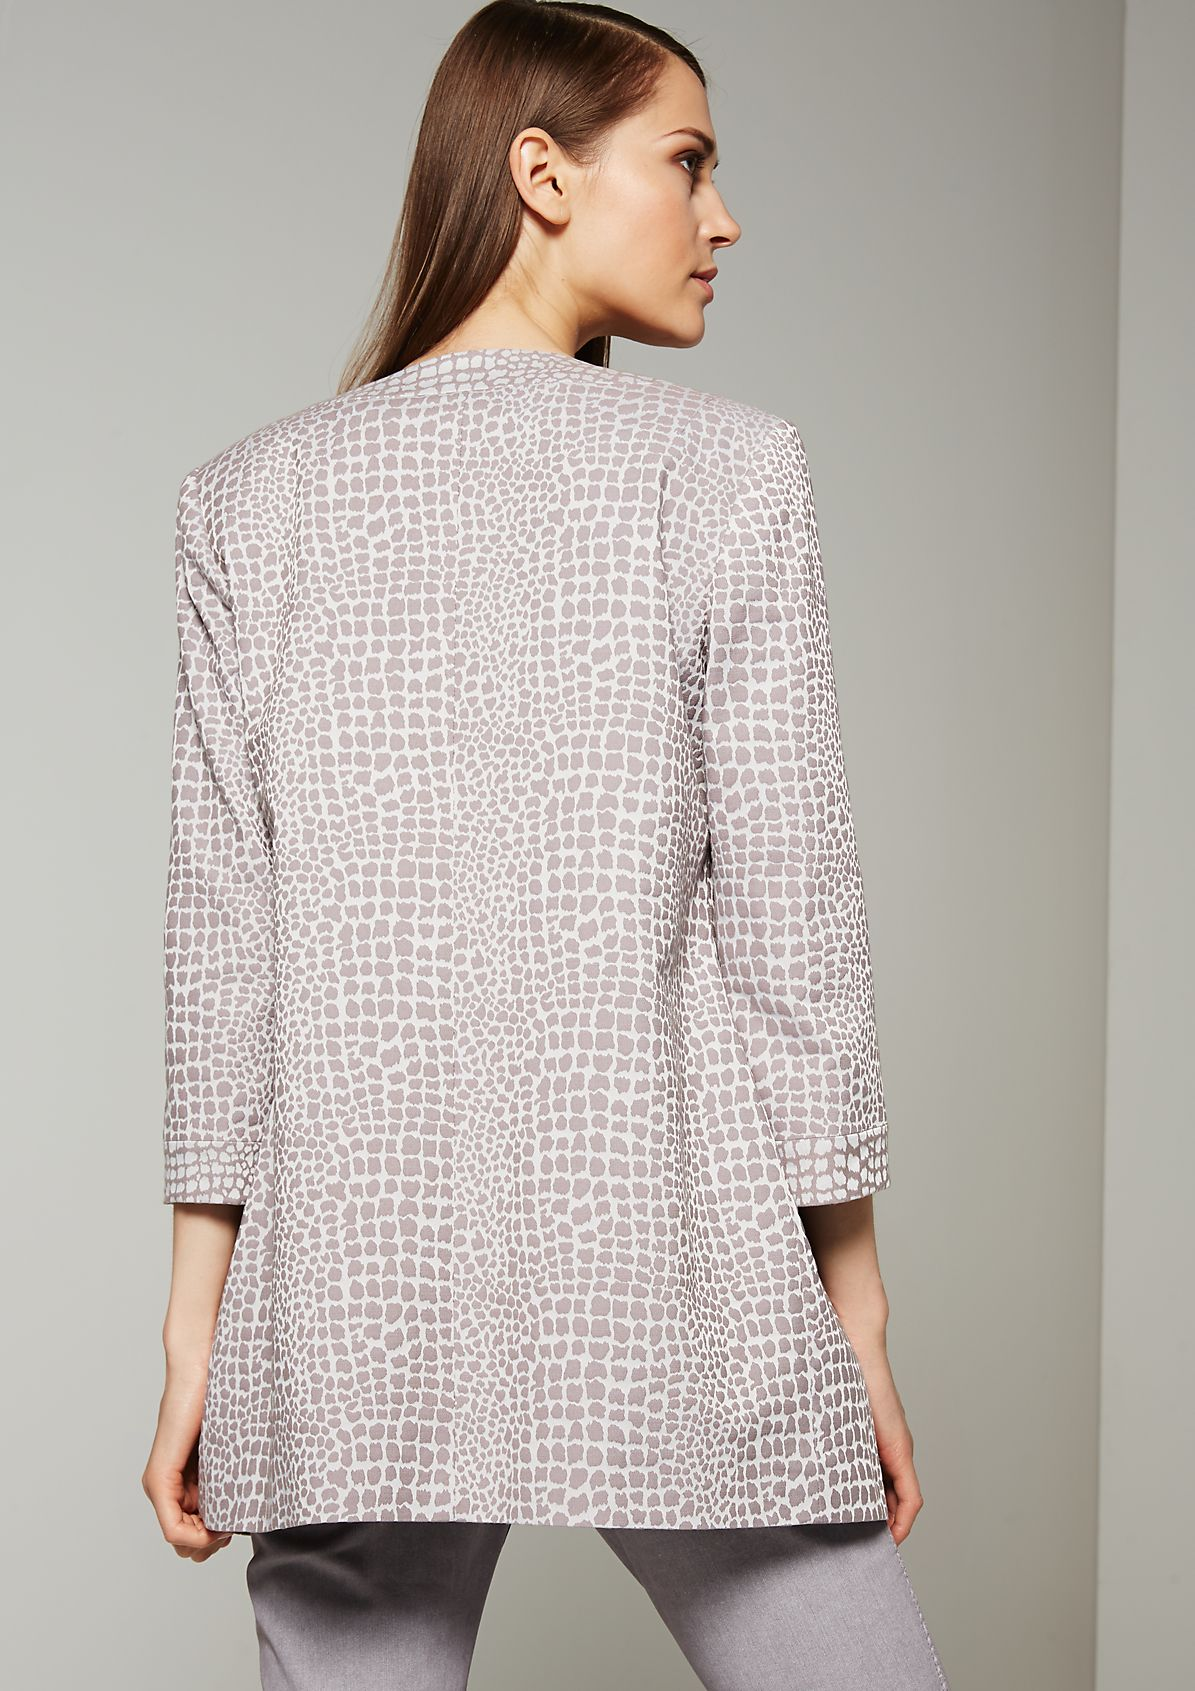 Elegant jacquard coat with a shiny metal pattern from s.Oliver